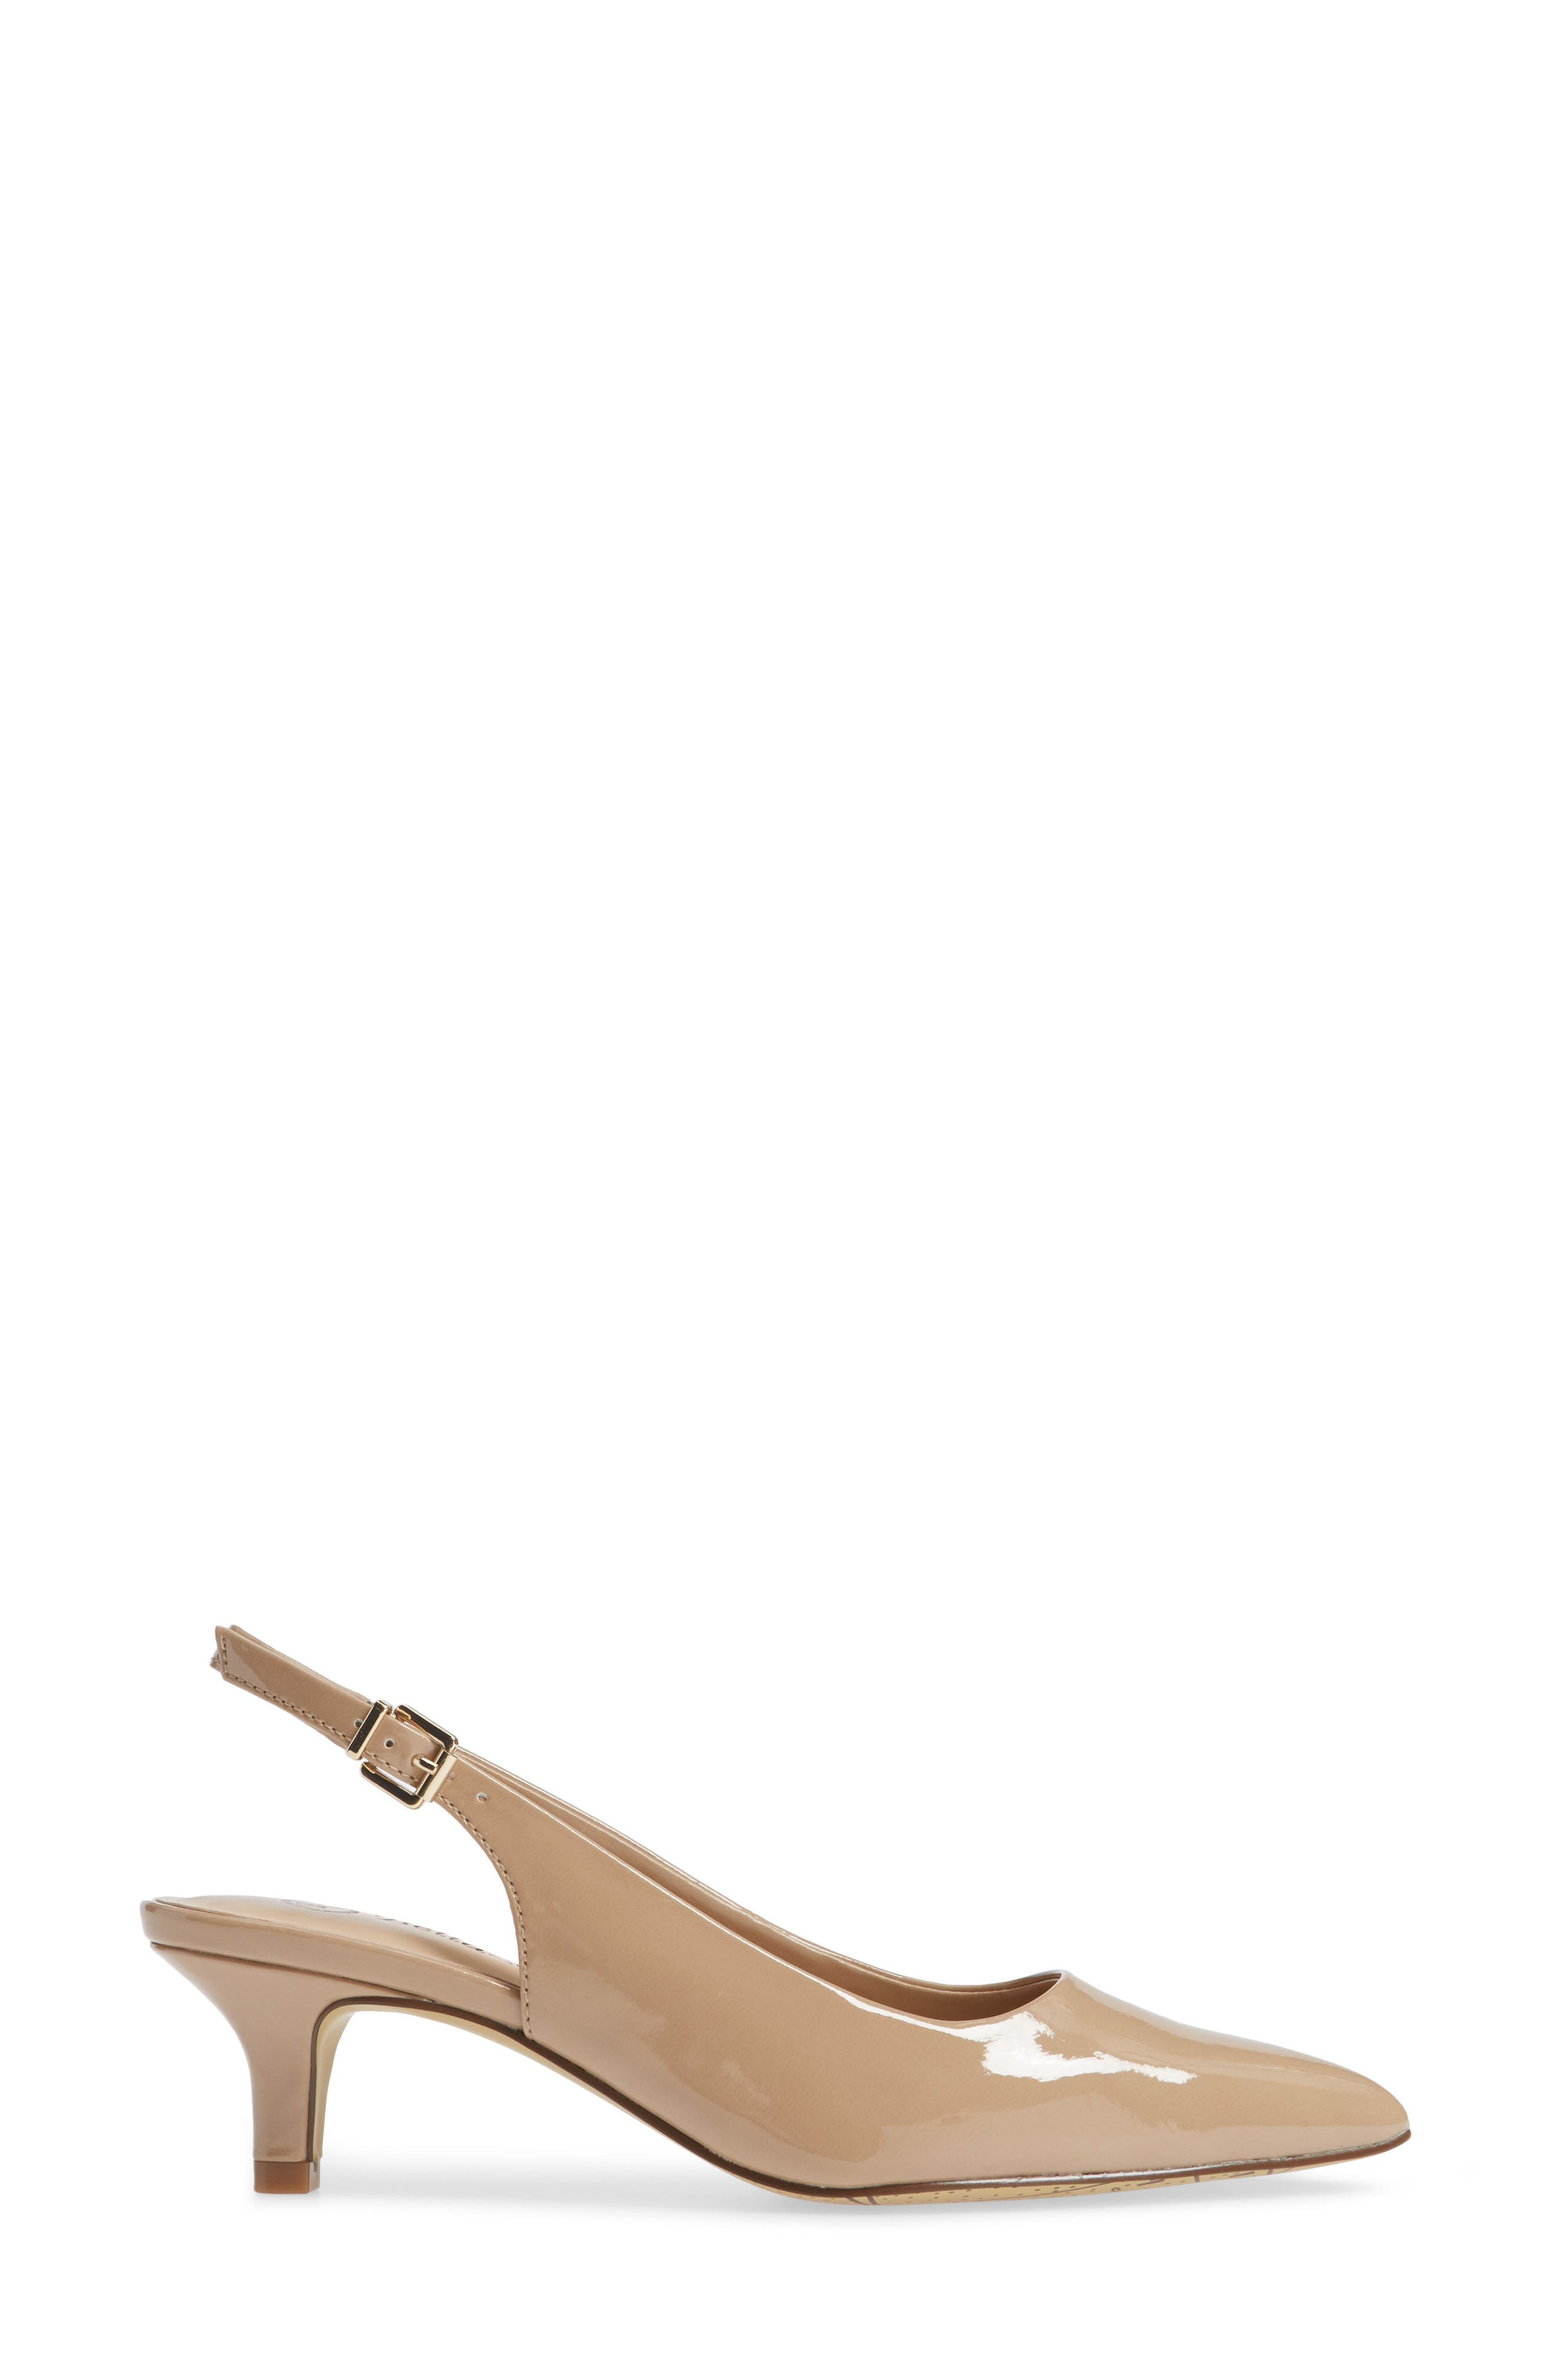 BELLA VITA, Scarlette Slingback Pump, Alternate thumbnail 3, color, NUDE PATENT